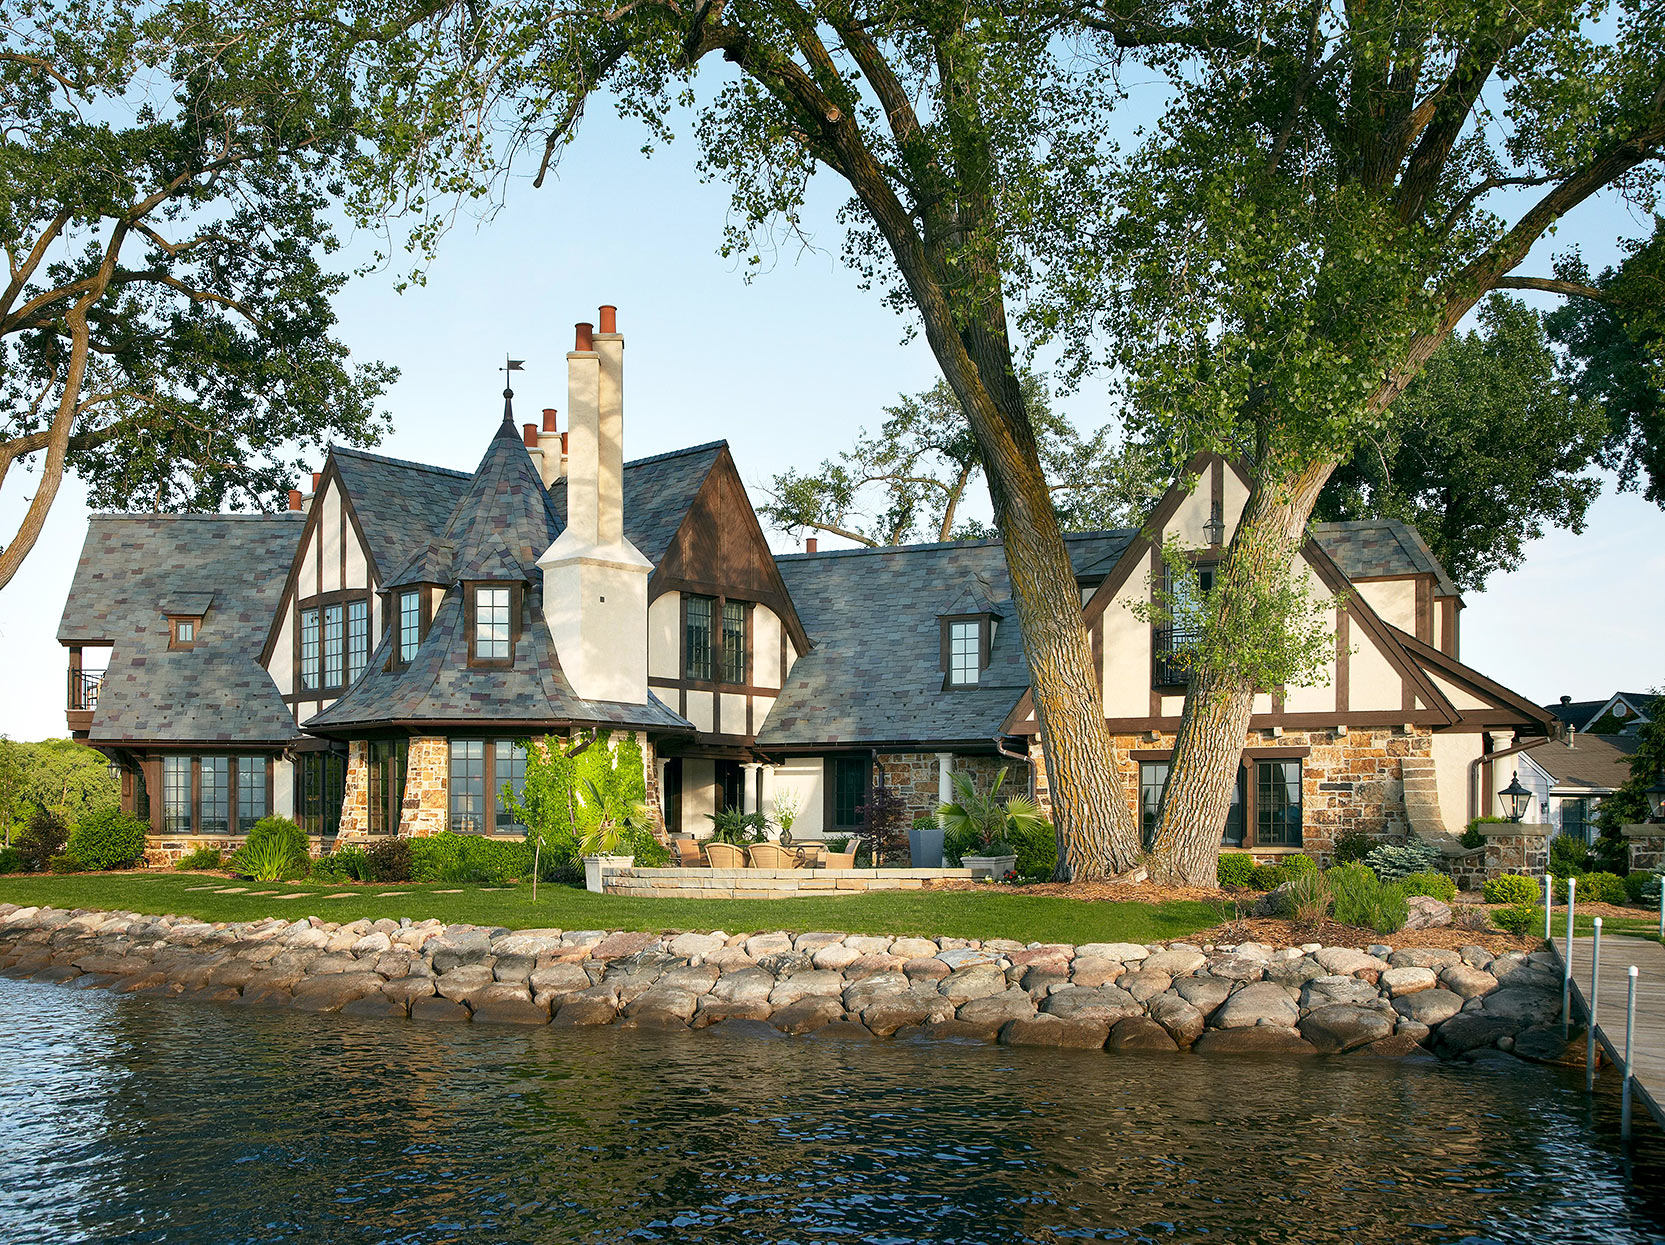 lakeside tudor with slate-tile roof and offset chimneys